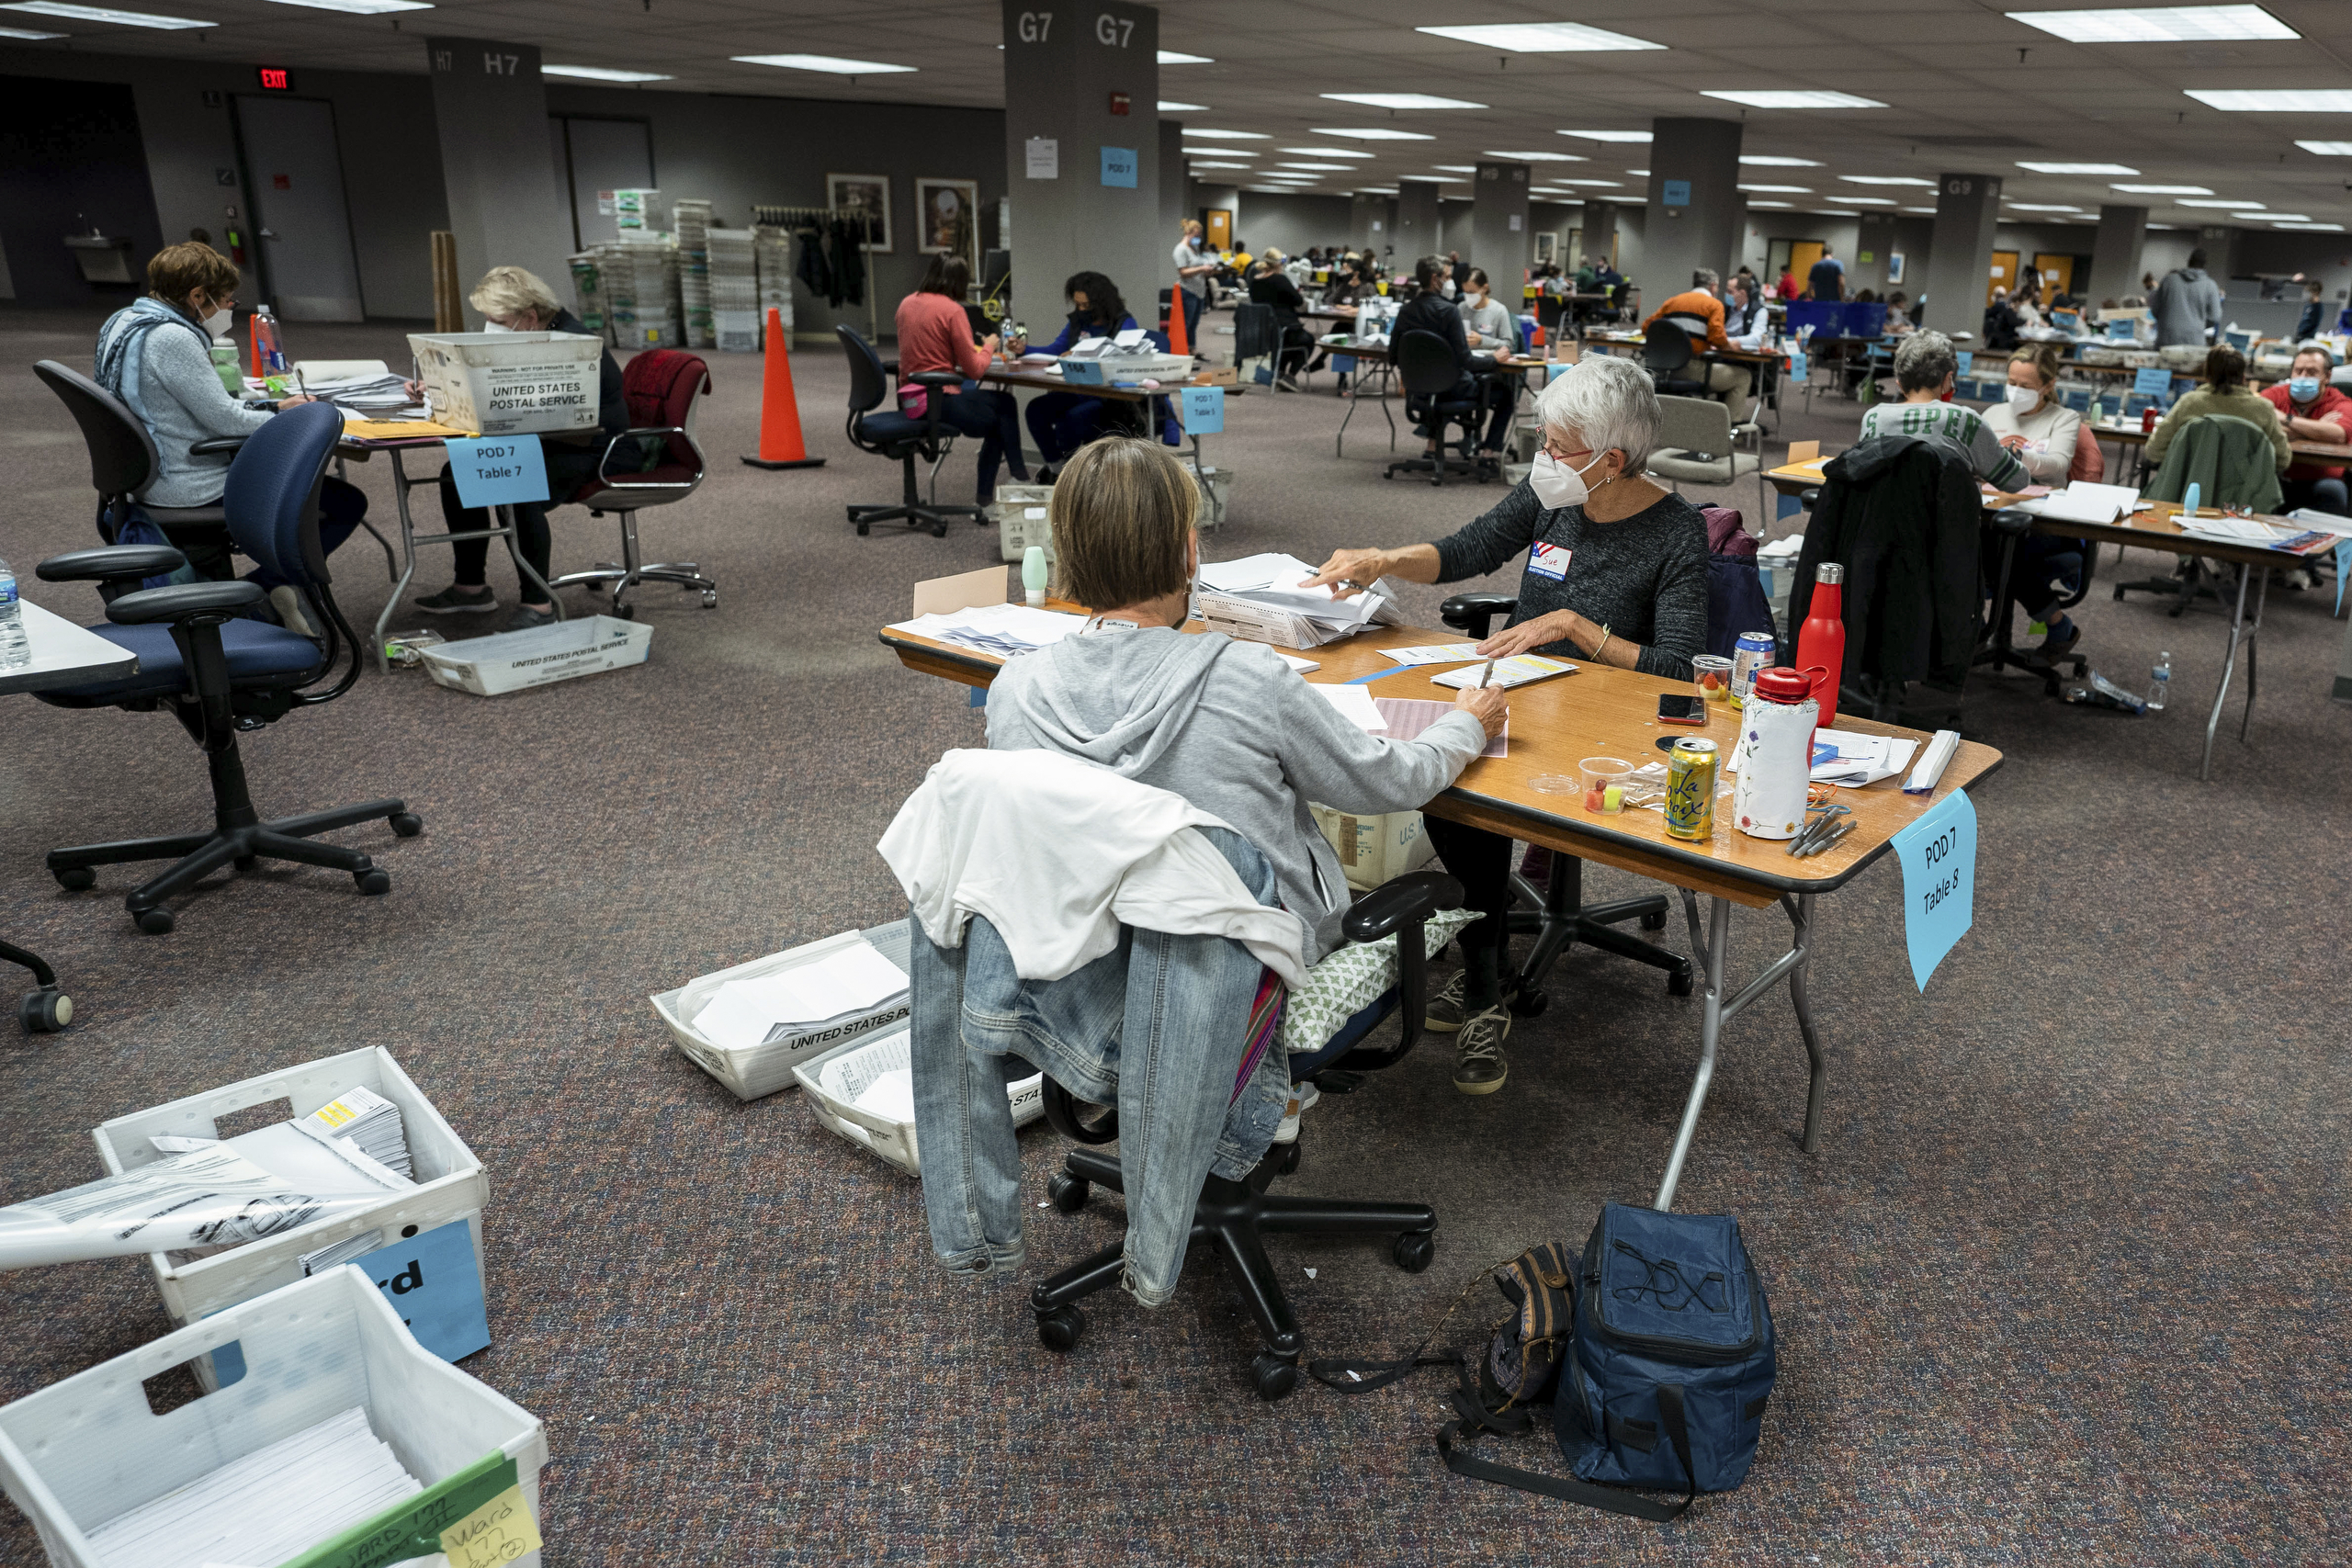 Election workers count ballots at the Milwaukee Central Count location after the polls had closed for the evening, on Nov. 3, 2020. Workers processed 169,000 absentee ballots at Central Count from 7 a.m. on Nov. 3 to 4 a.m. on Nov. 4, when results were released.